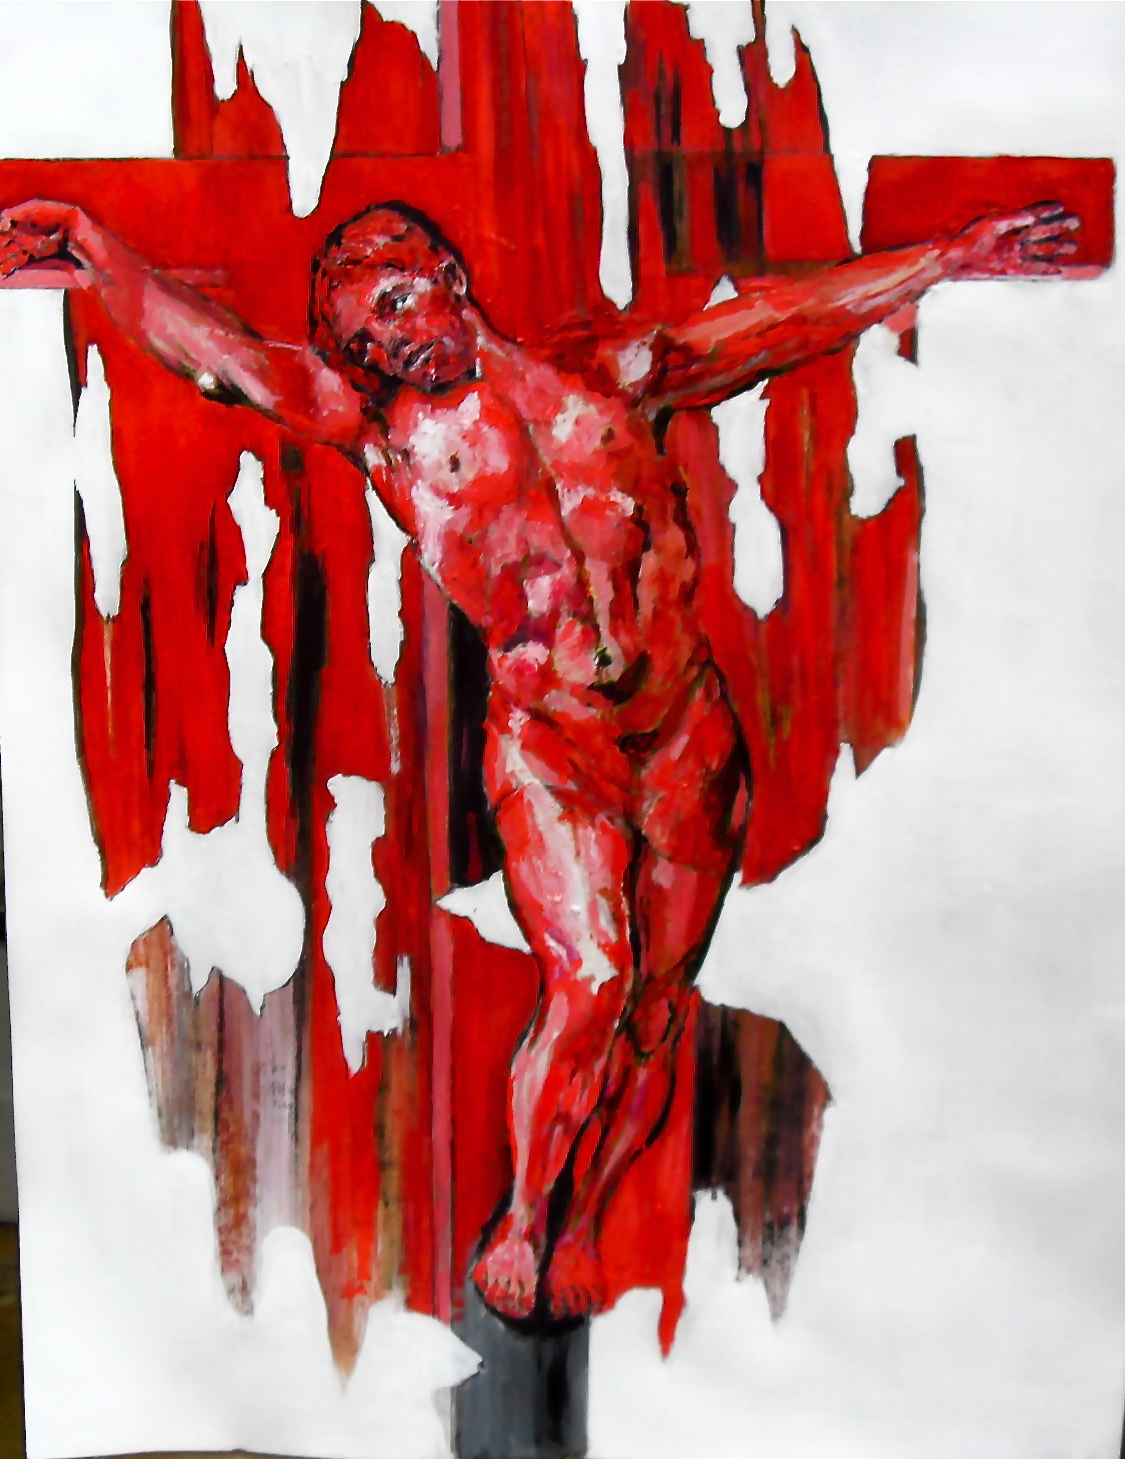 Christ en croix rouge/ Red Christ on cross/ ou danseur christique/ or christic dancer/ par Stanmac 65x50 cm